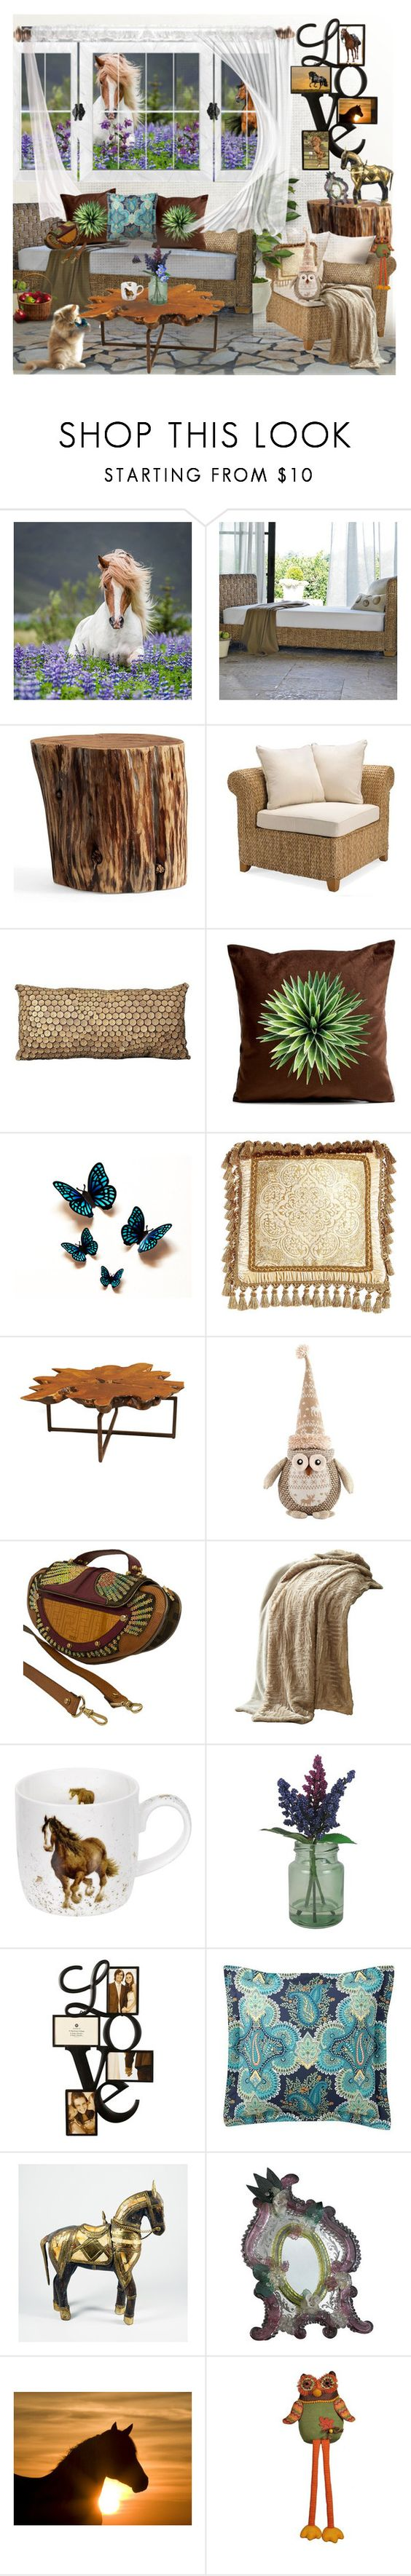 """""""For the love of horses"""" by amara-m-hafeez ❤ liked on Polyvore featuring interior, interiors, interior design, home, home decor, interior decorating, Pottery Barn, Mina Victory, Isabella Collection and Fendi"""